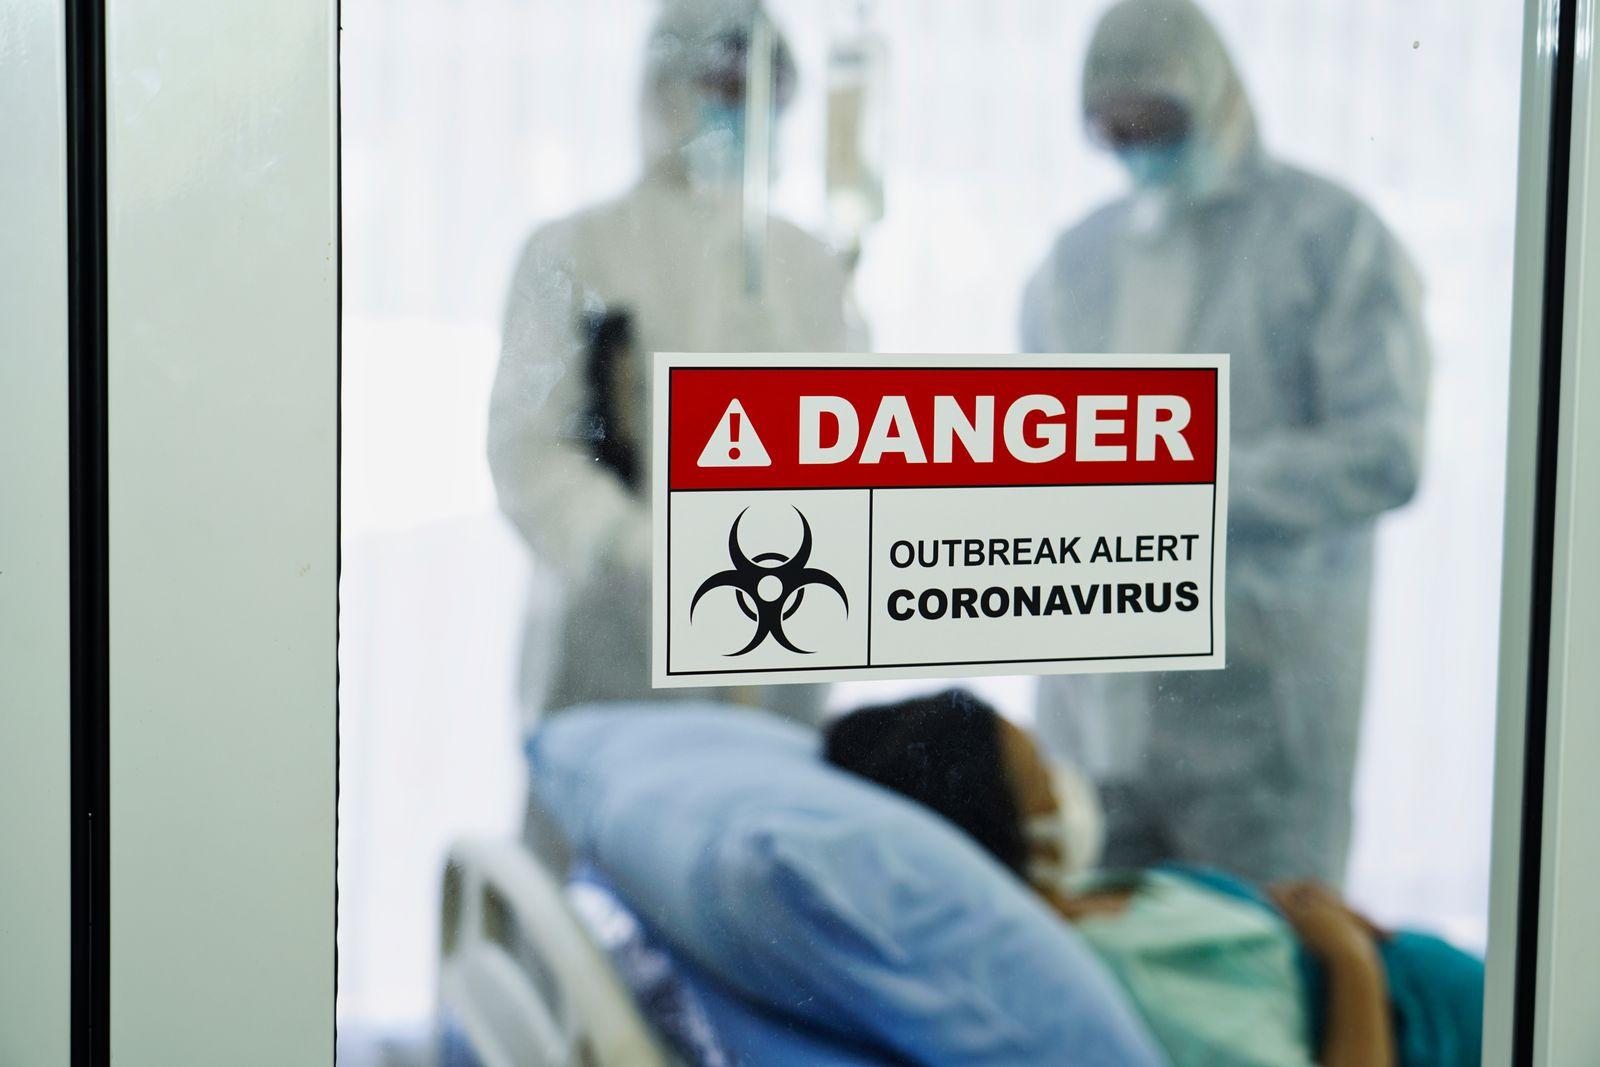 A coronavirus danger sign in front of a control area with a team of doctors in protective gear attending to an infected patient in a quarantined room   Photo: Shutterstock/Kobkit Chamchod